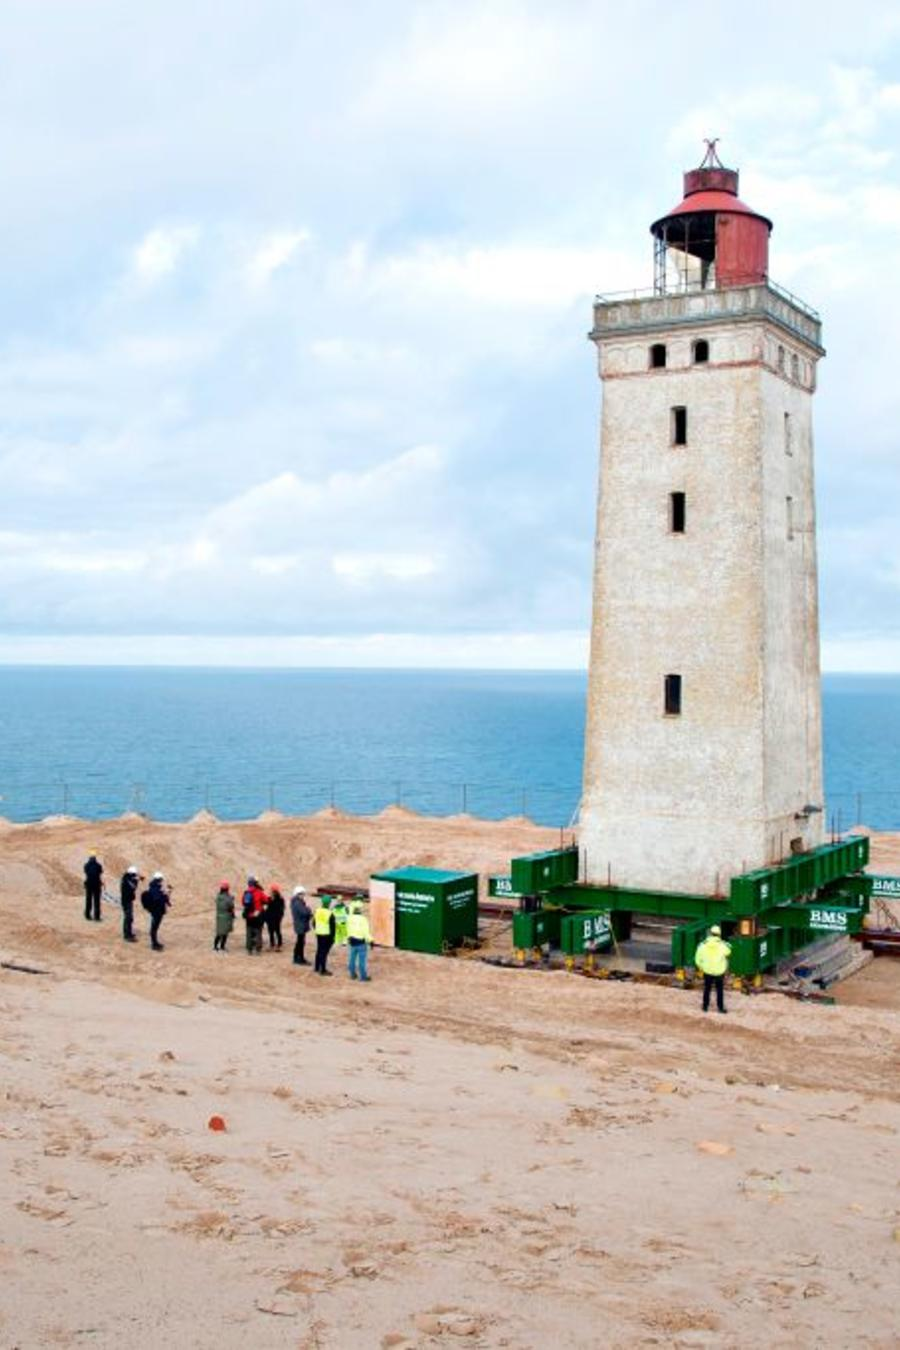 TOPSHOT-DENMARK-EROSION-LIGHTHOUSE-MOVING